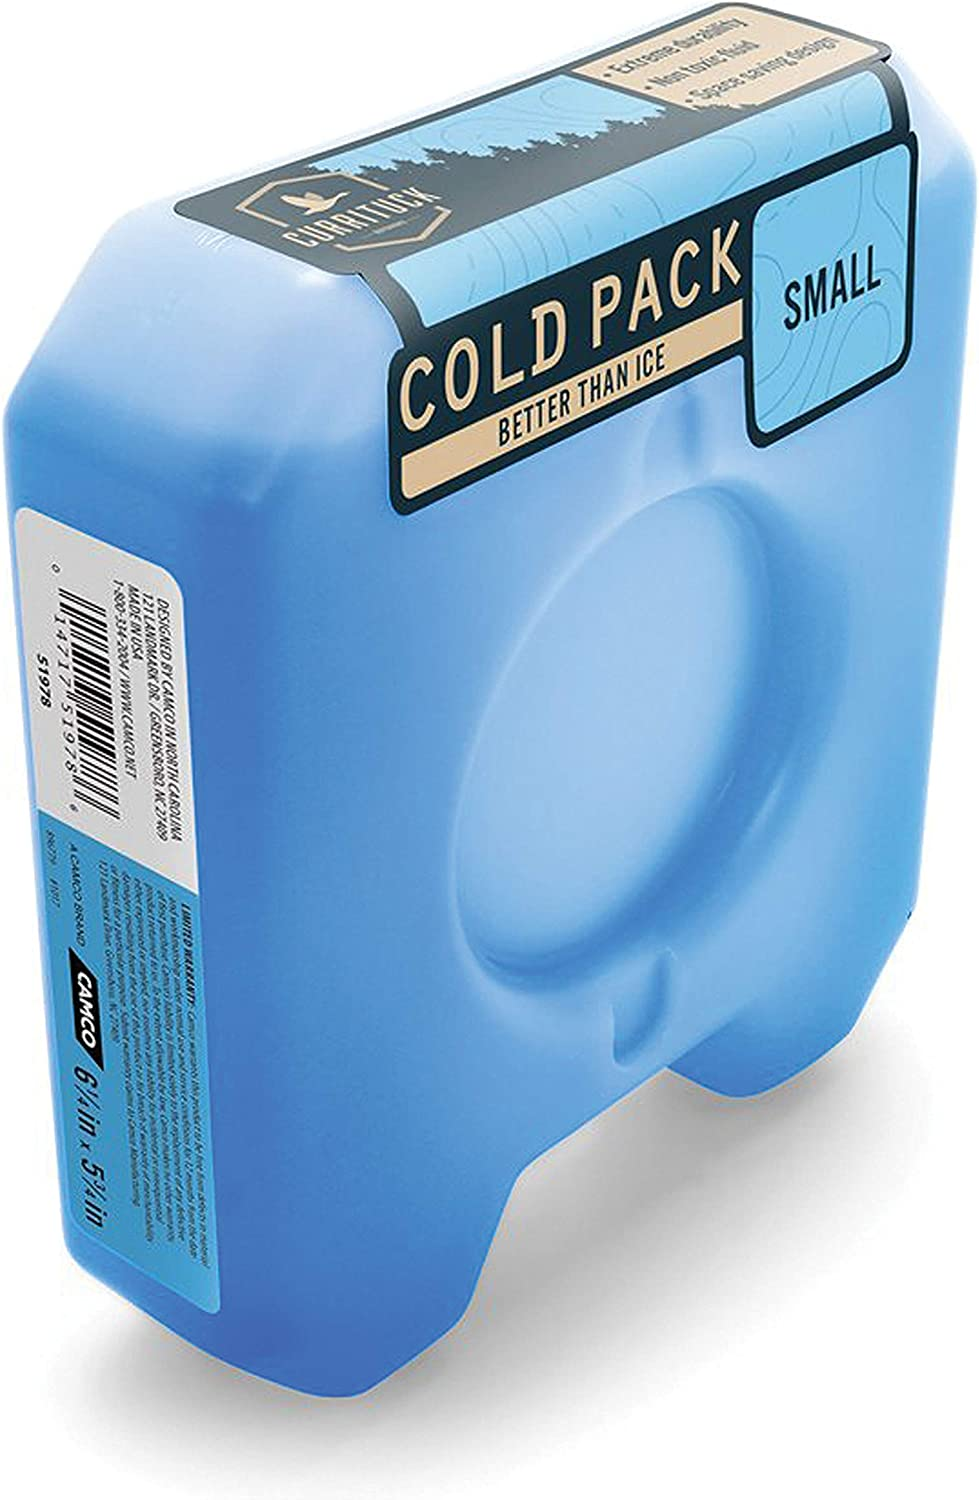 Camco Small Currituck Reusable Freezer Cold Pack for Coolers and Lunch Boxes These Cool Ice Packs are Perfect for Camping, Hiking, the Beach and Travel (51978)